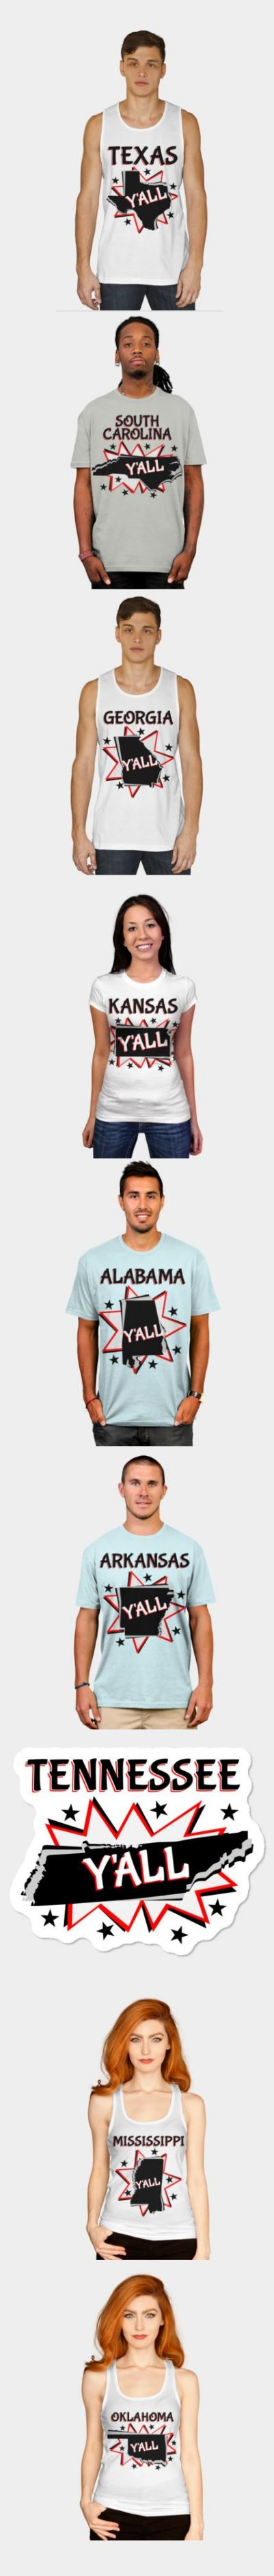 Southern state y'all. T-shirts, mugs and stickers in the shape of the southern states. These are on top of comic book style starburst. Texas, Kansas, South Carolina, Arkansas, Mississippi and more